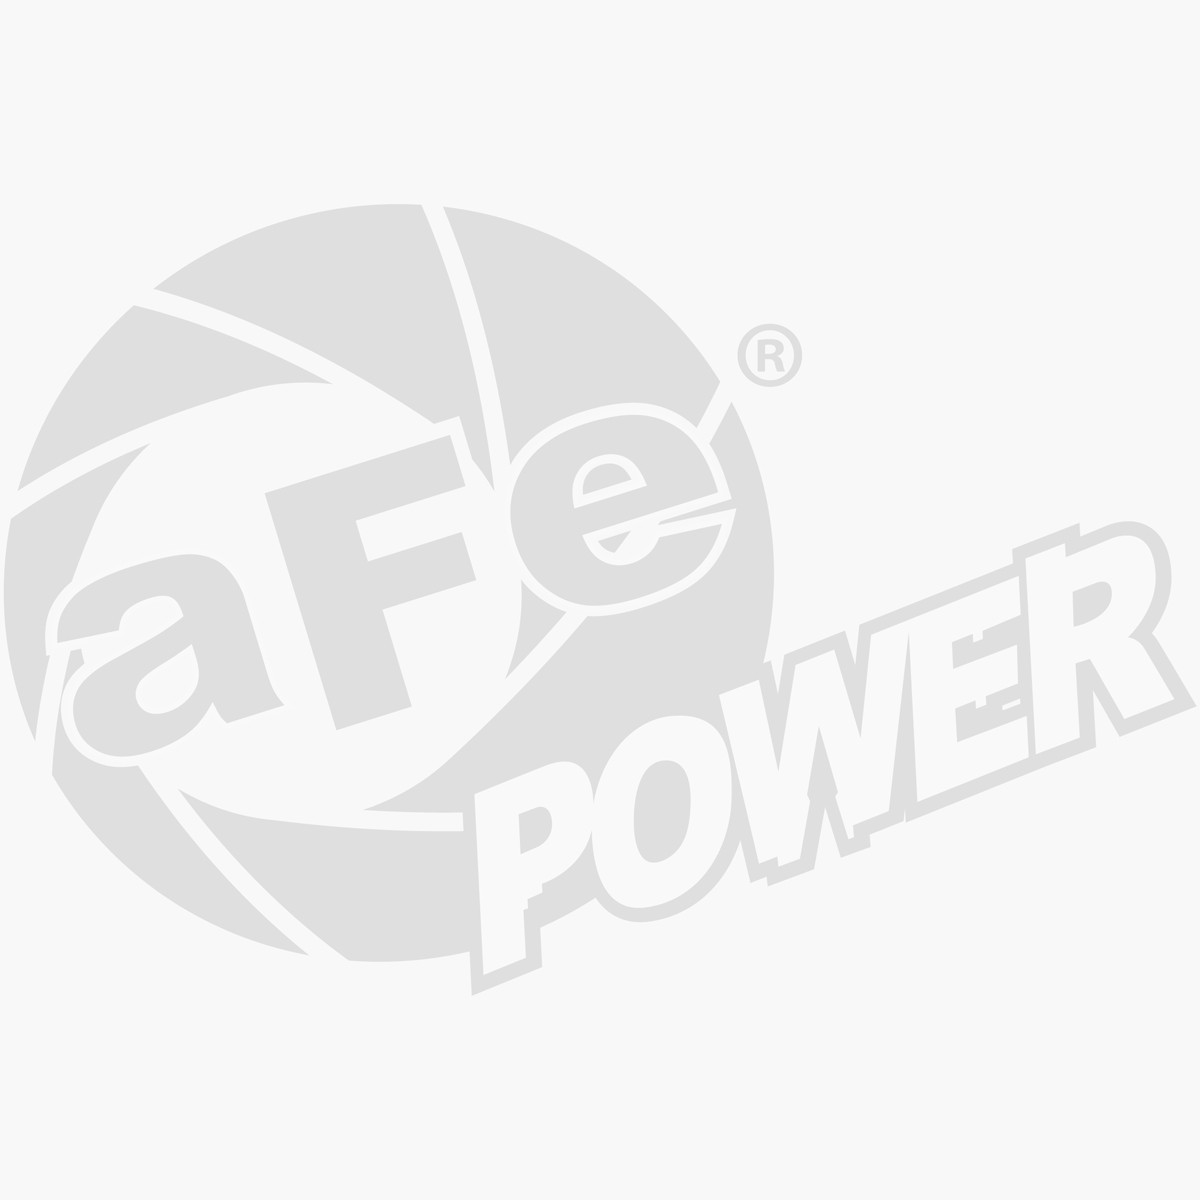 aFe POWER 40-30236 Apparel; Shirt, Tee - Innovate or Die (L)